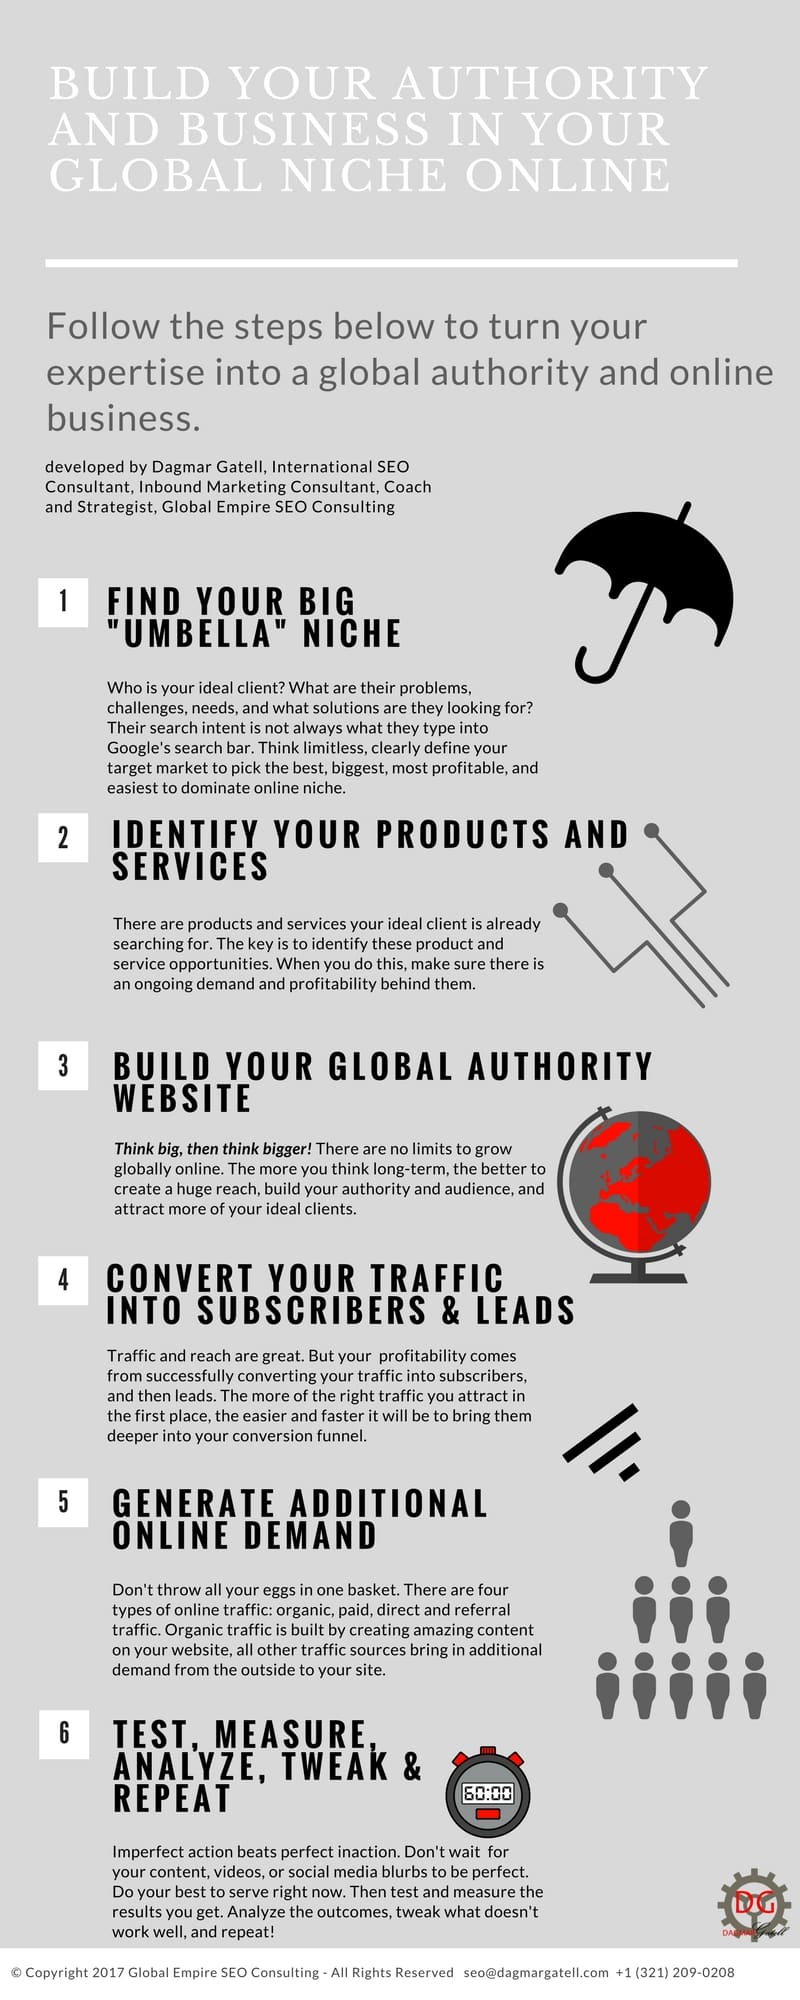 infographic build your authority and business in your global niche online, introducing seo expert services